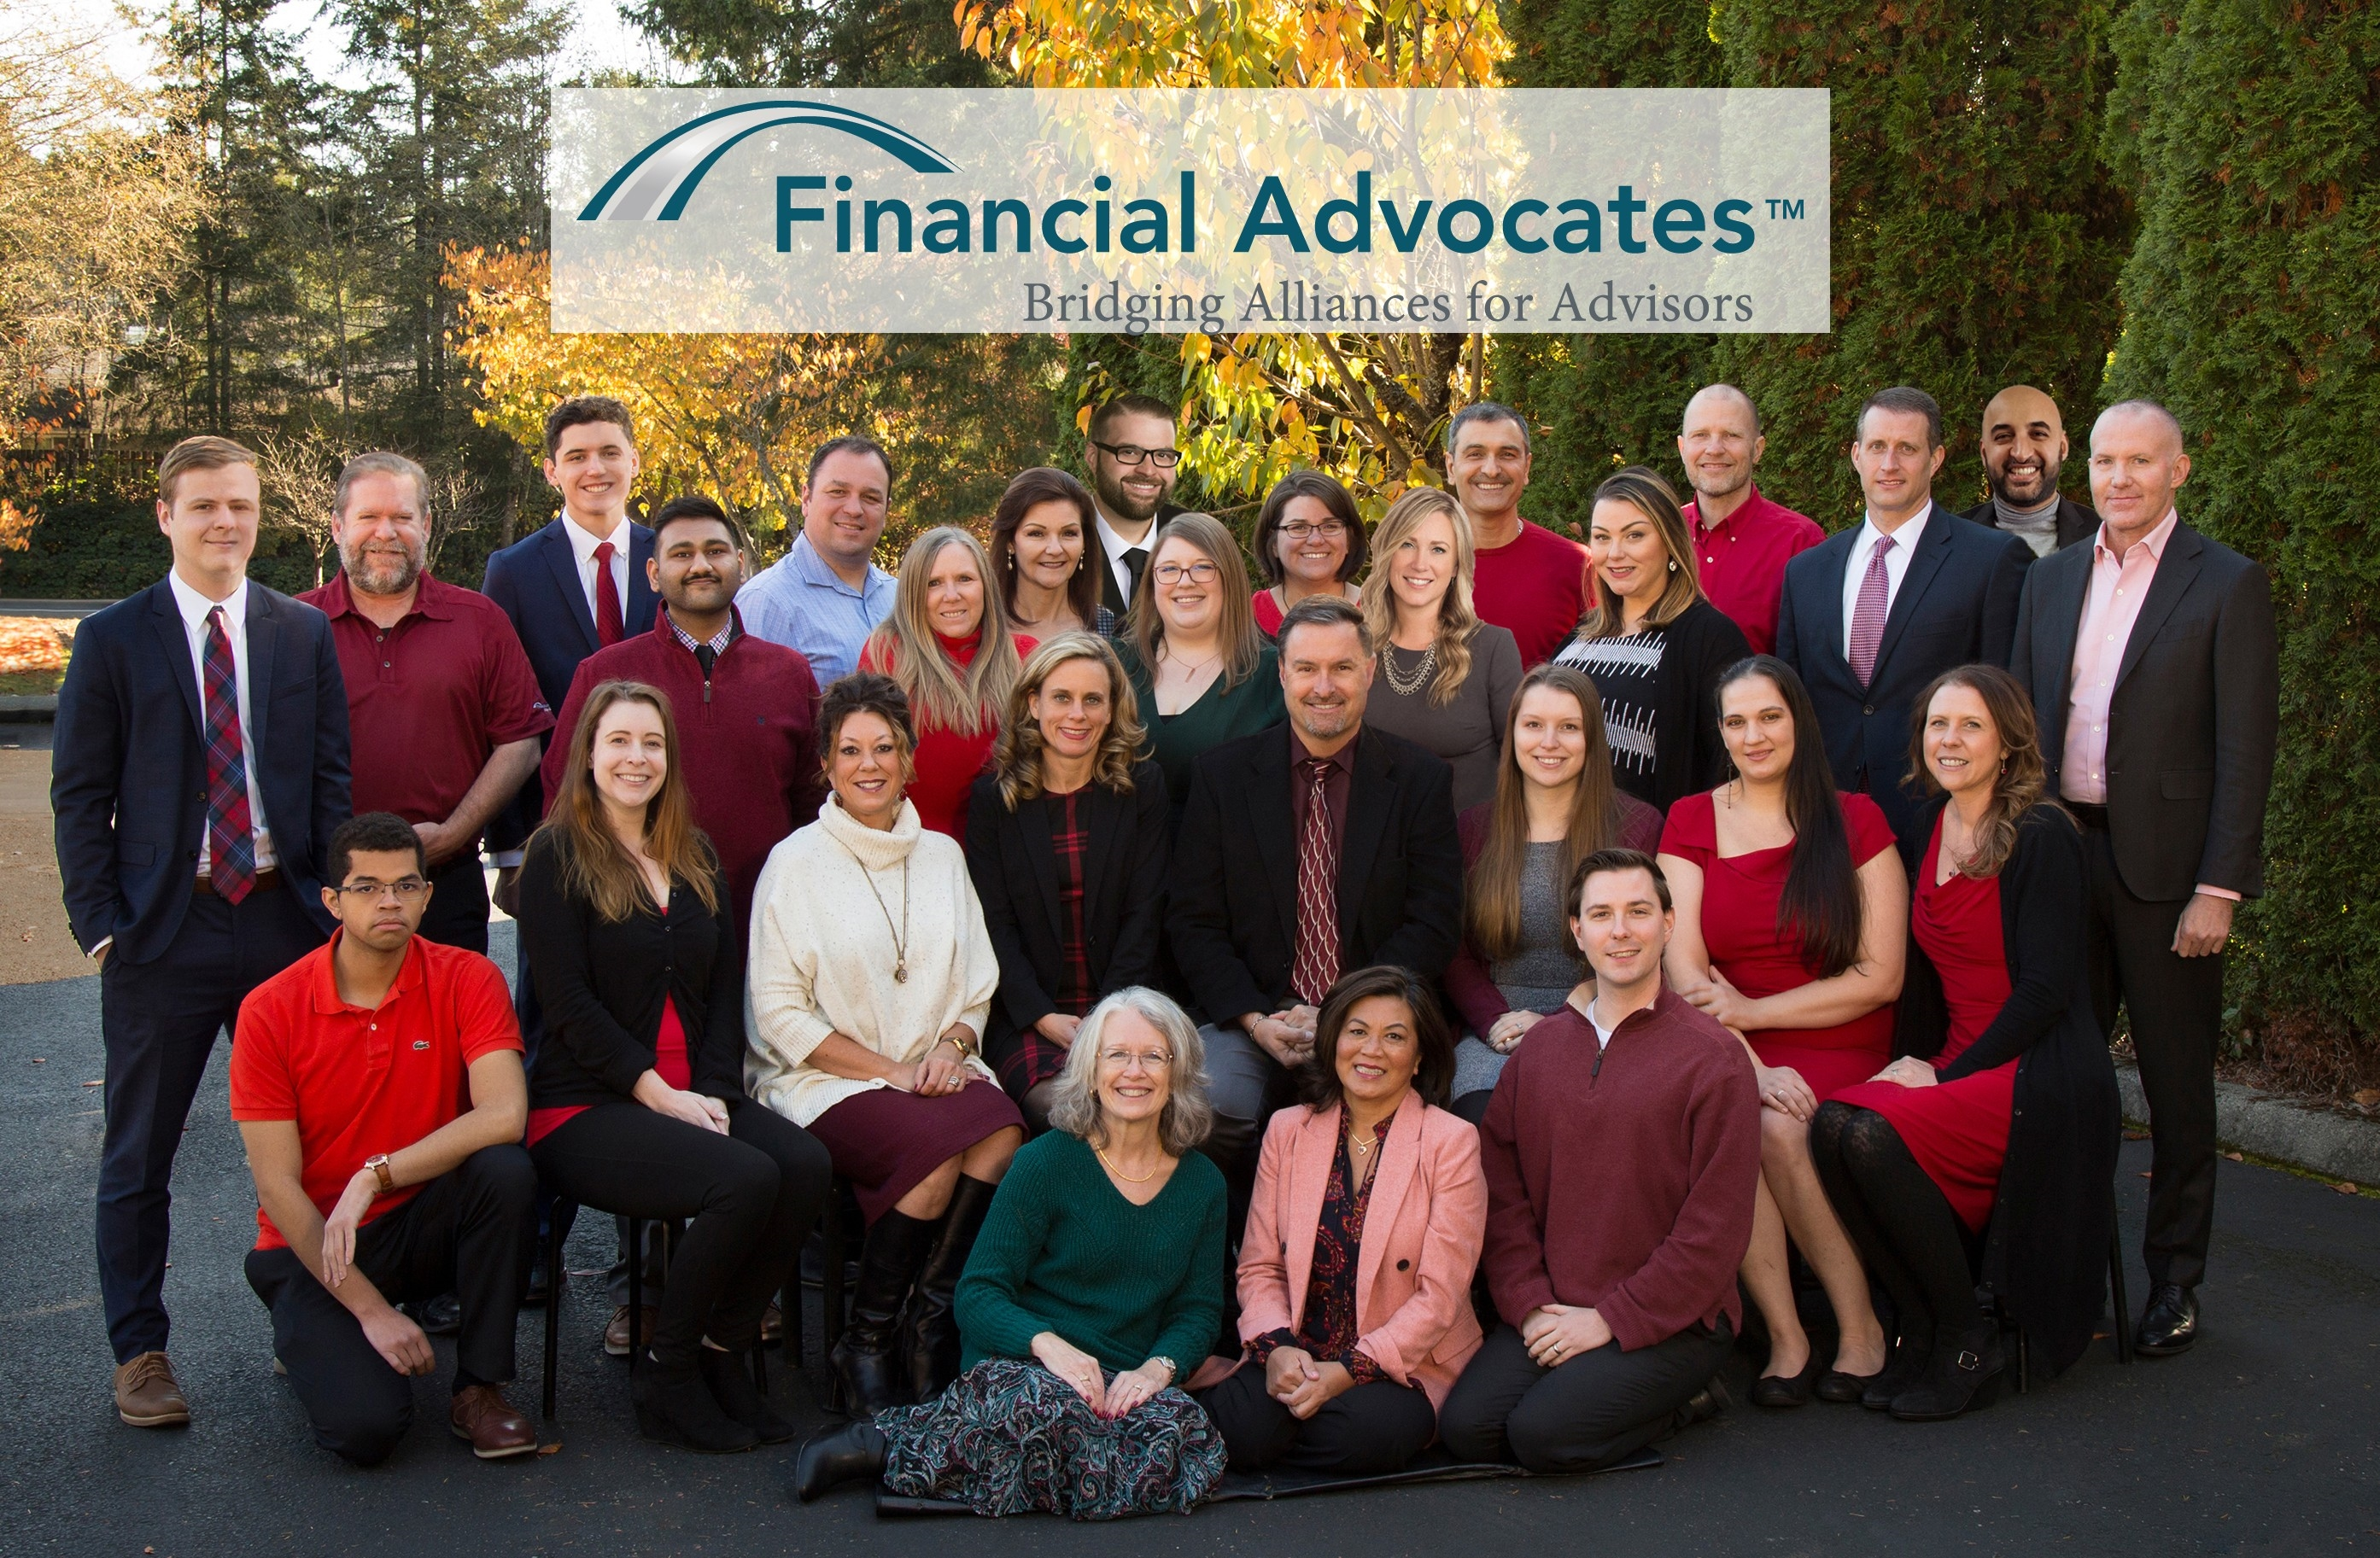 About Financial Advocates